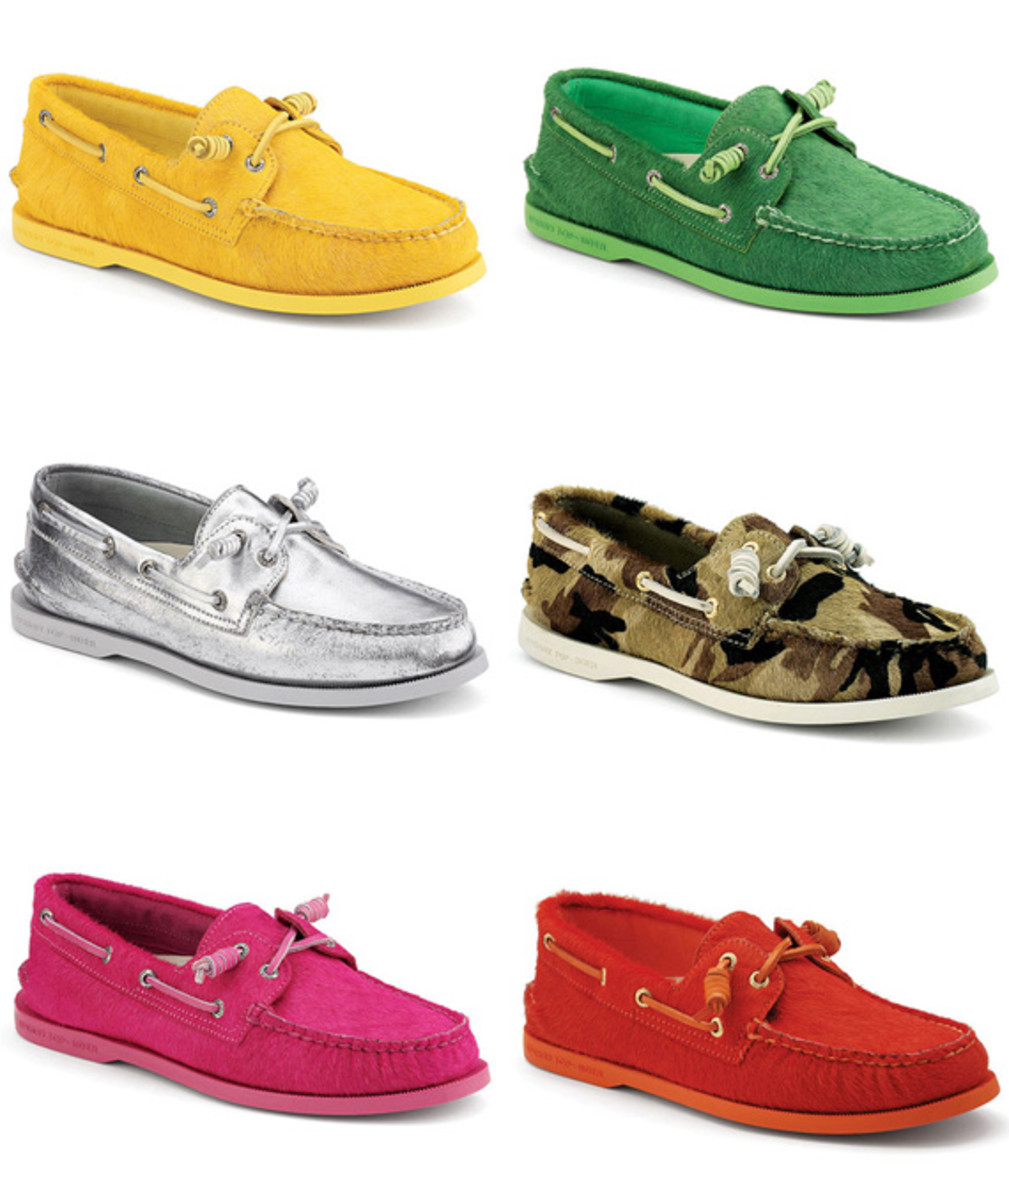 jeffrey-x-sperry-top-sider-authentic-original-barrel-lace-boat-shoes-01